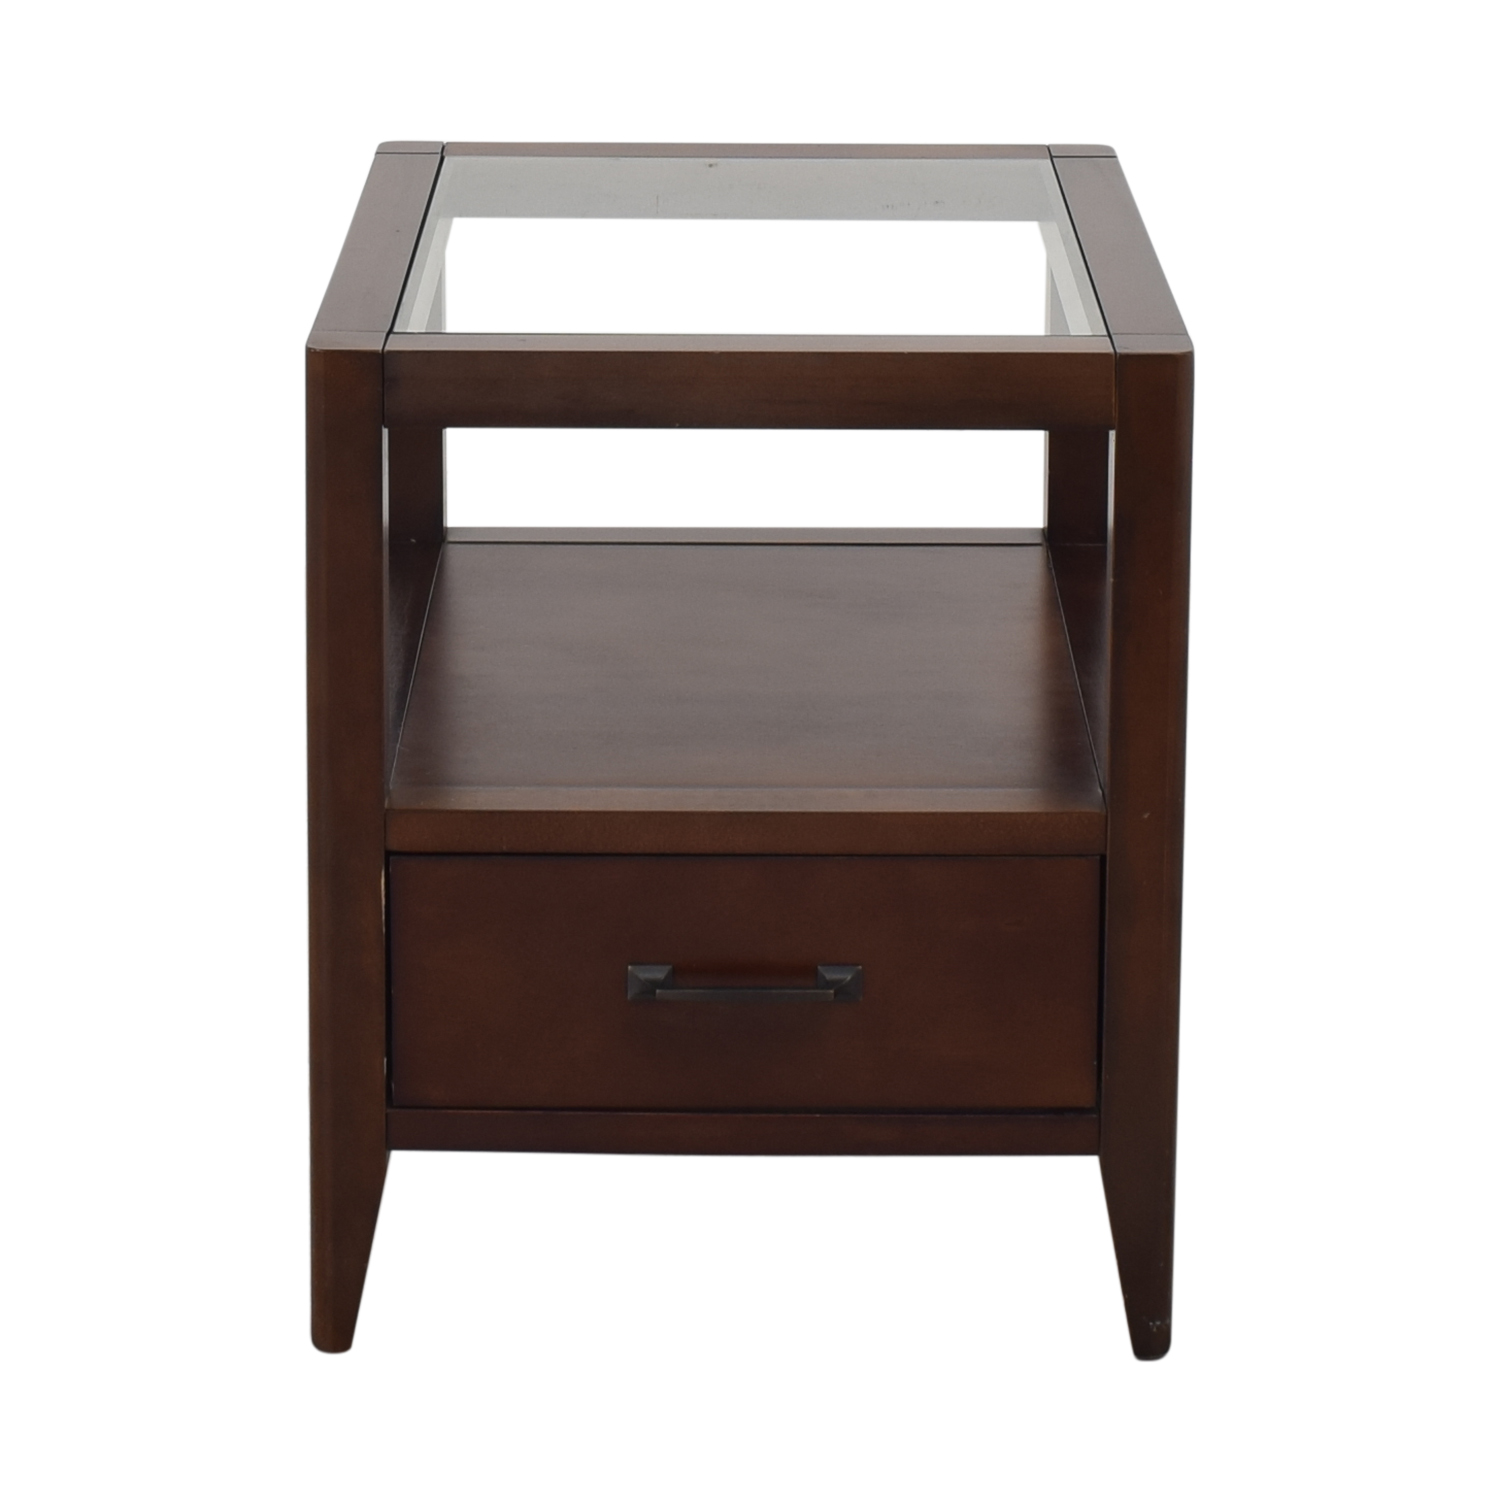 Crate & Barrel Crate & Barrel End Table with Drawer discount